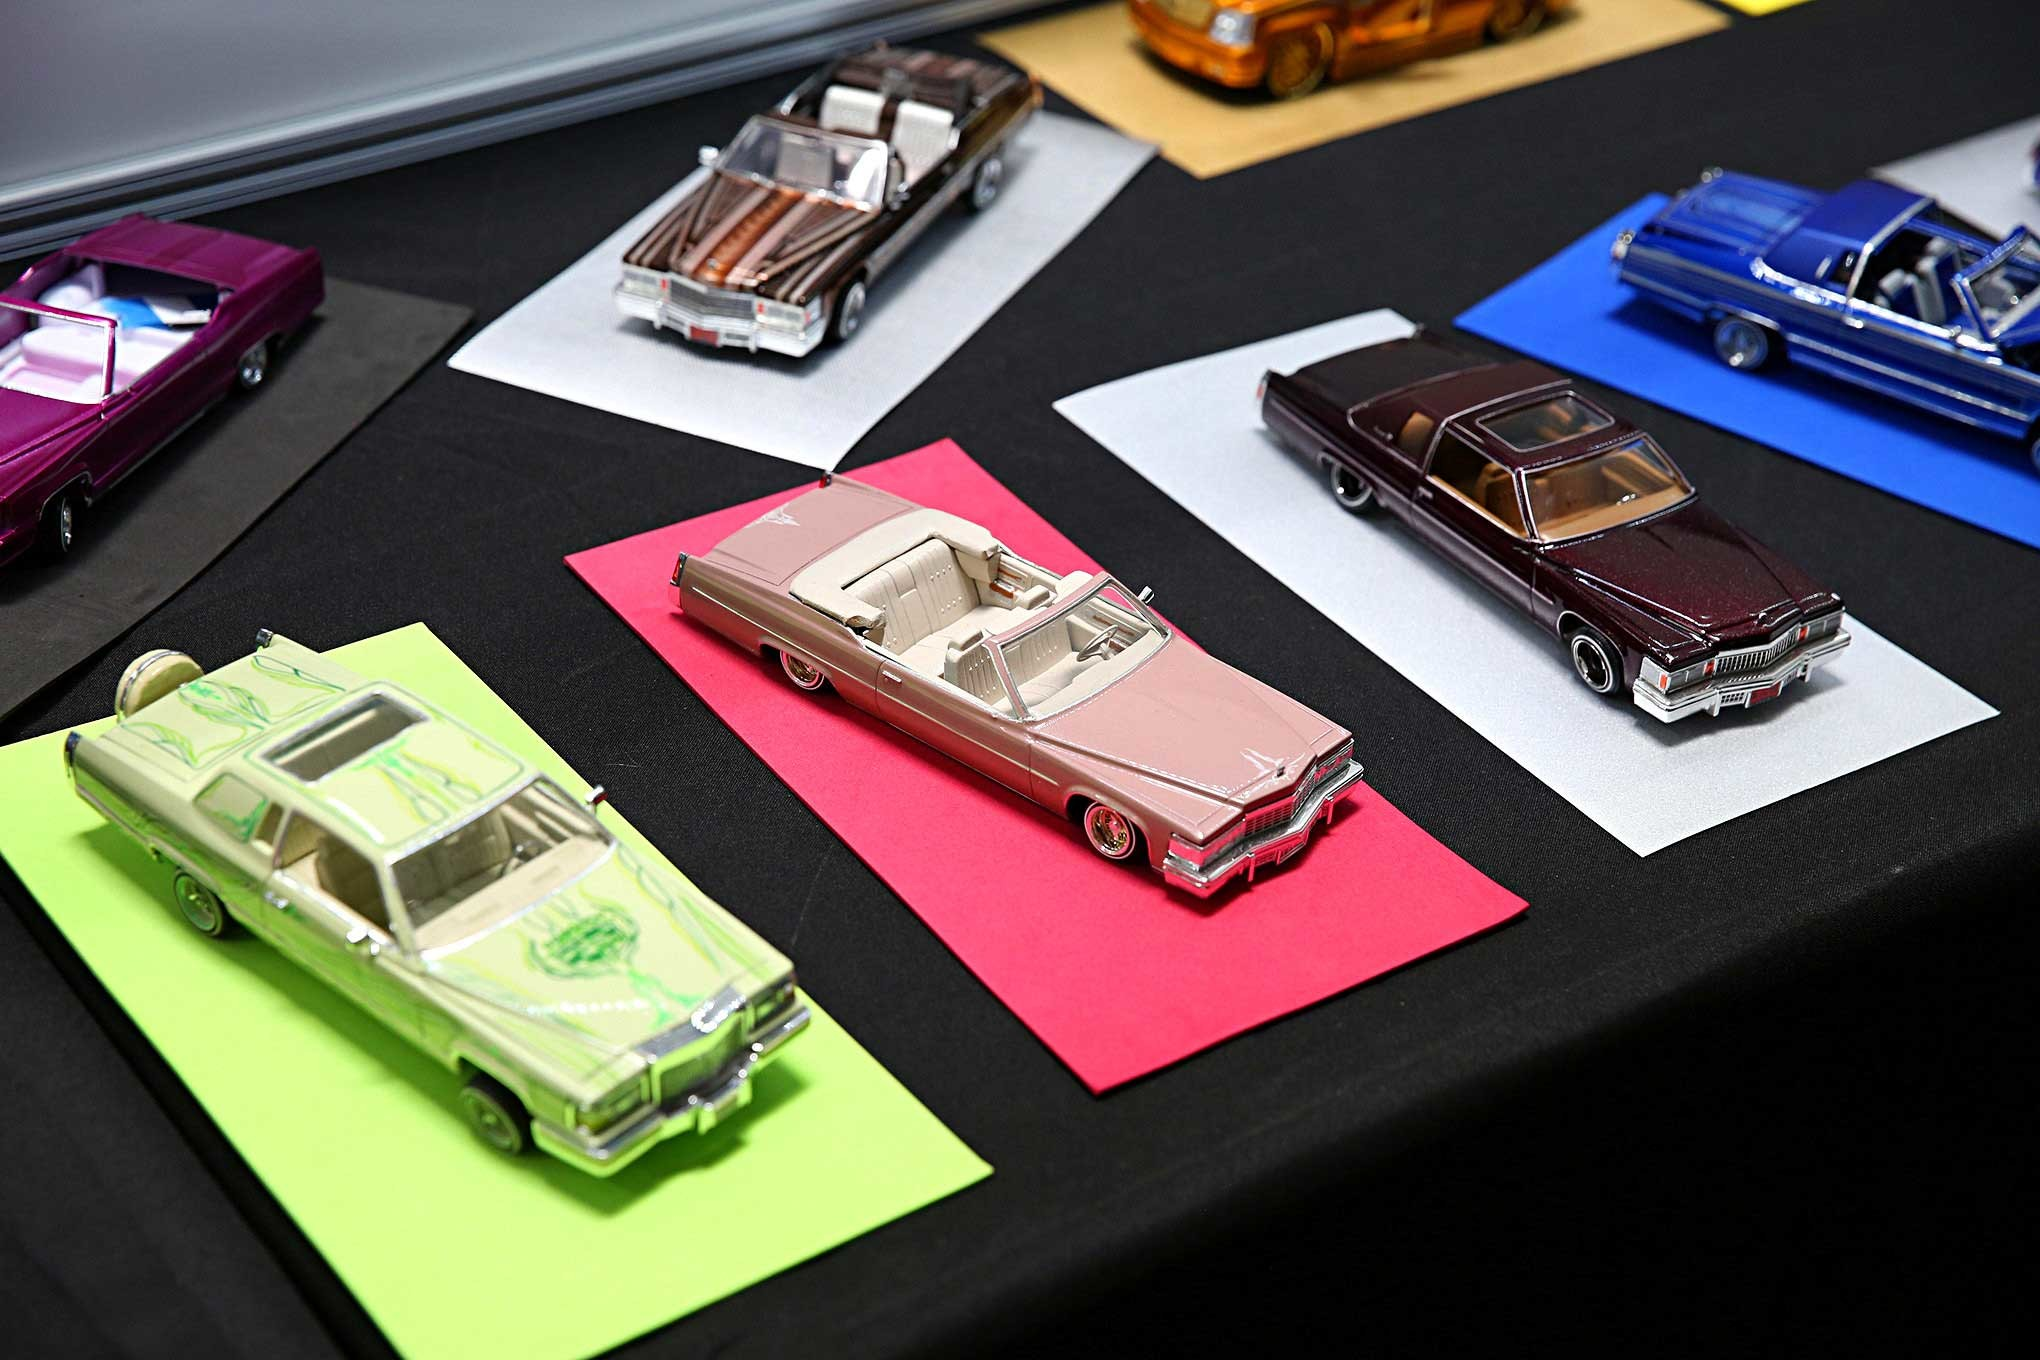 2018-Lowrider-Bike-And-Model-Car-Show-Model-Cars-020